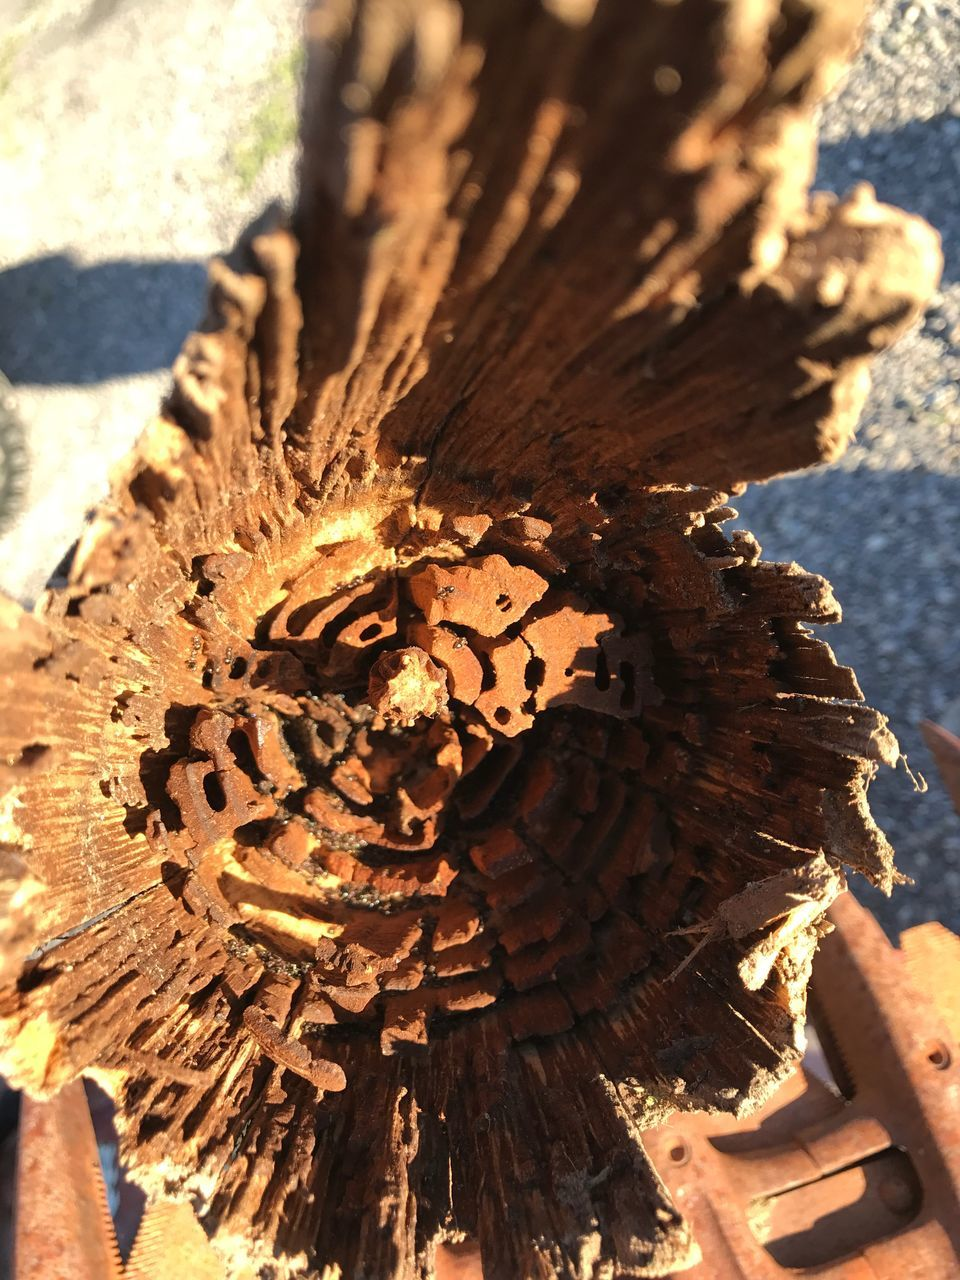 wood - material, sunlight, close-up, no people, outdoors, day, nature, tree stump